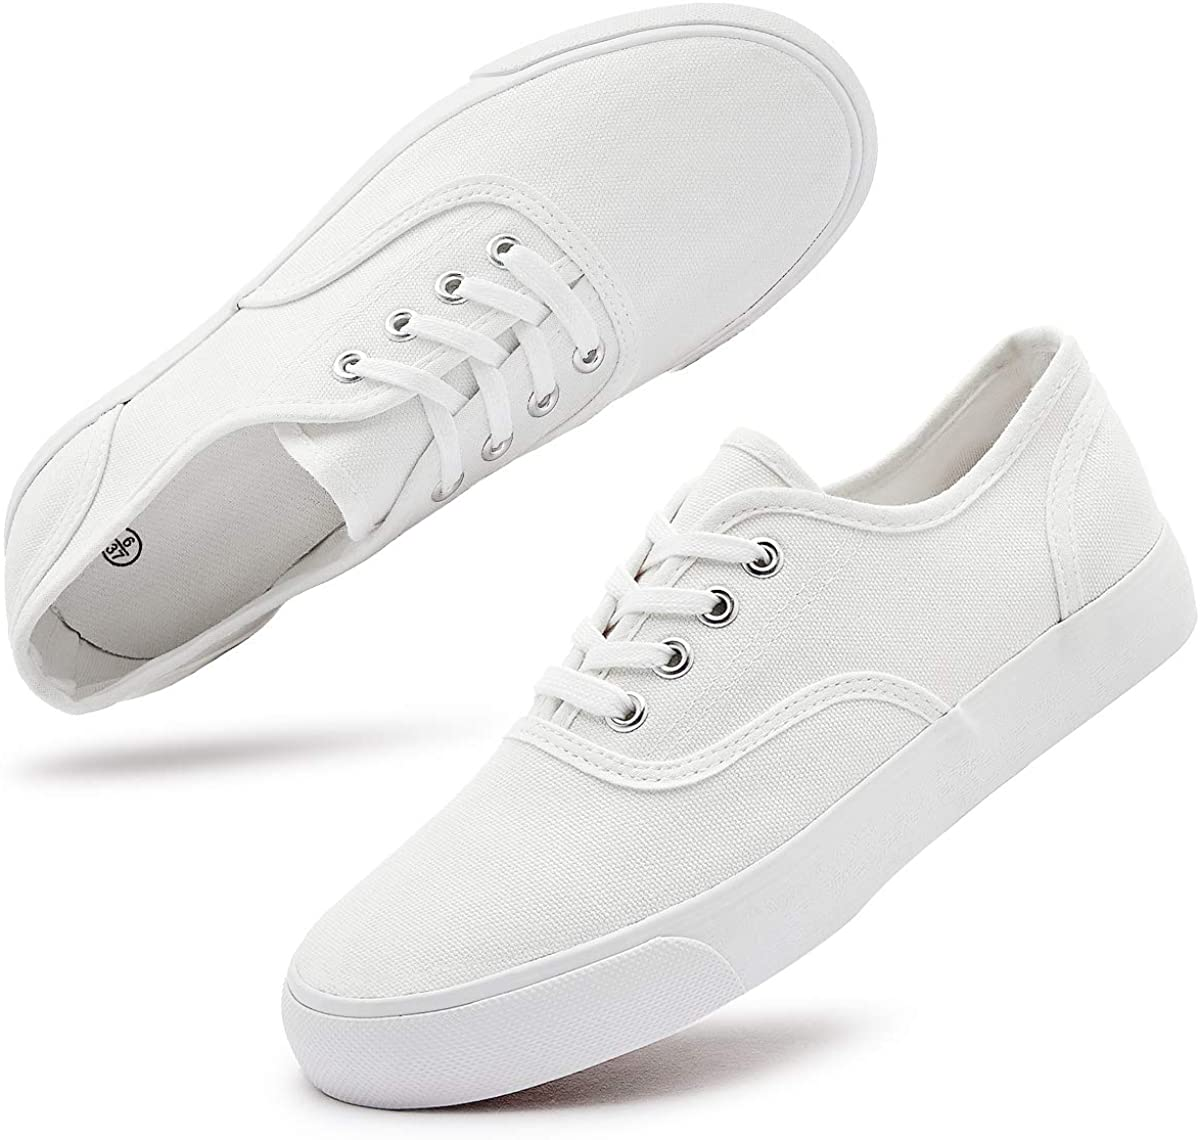 Women's Canvas Sneakers Low Cut In a popularity Casual SEAL limited product Shoes Up Tenn Lace